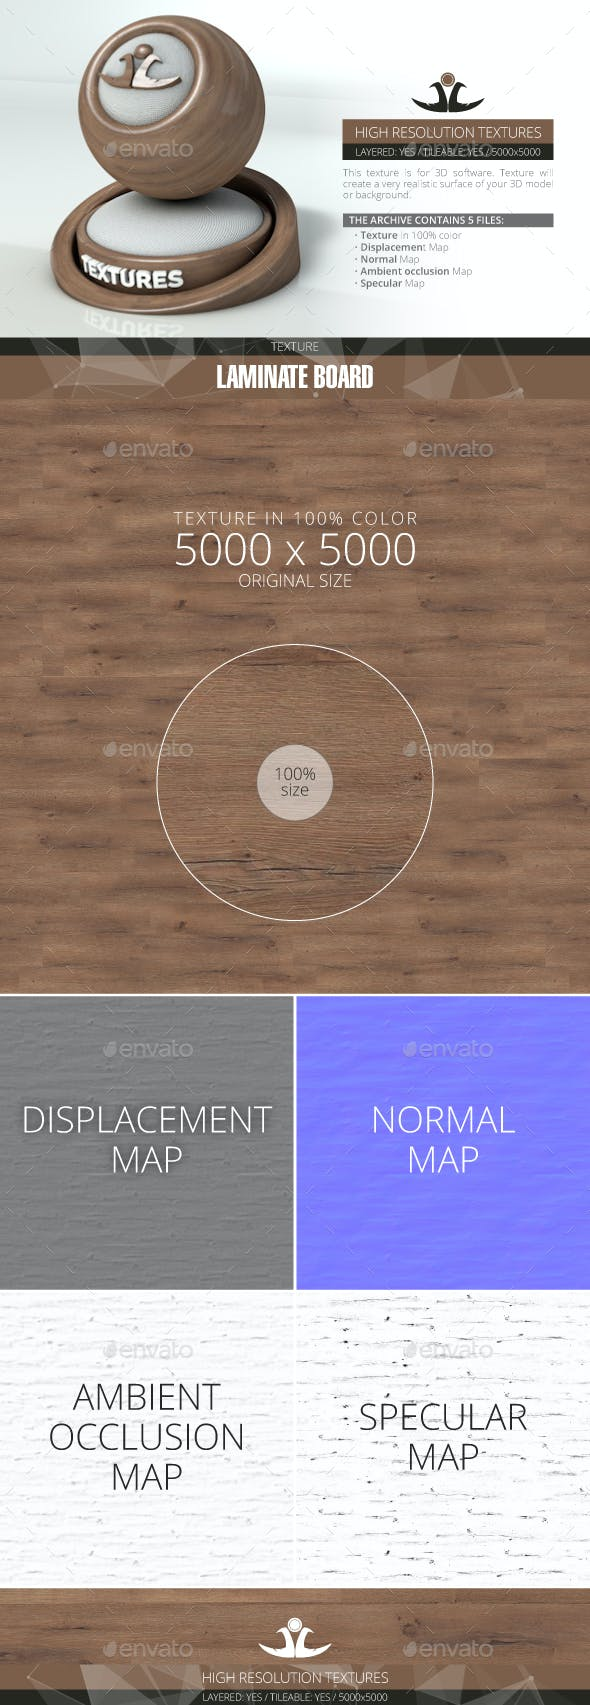 Laminate Board 29 - 3DOcean Item for Sale